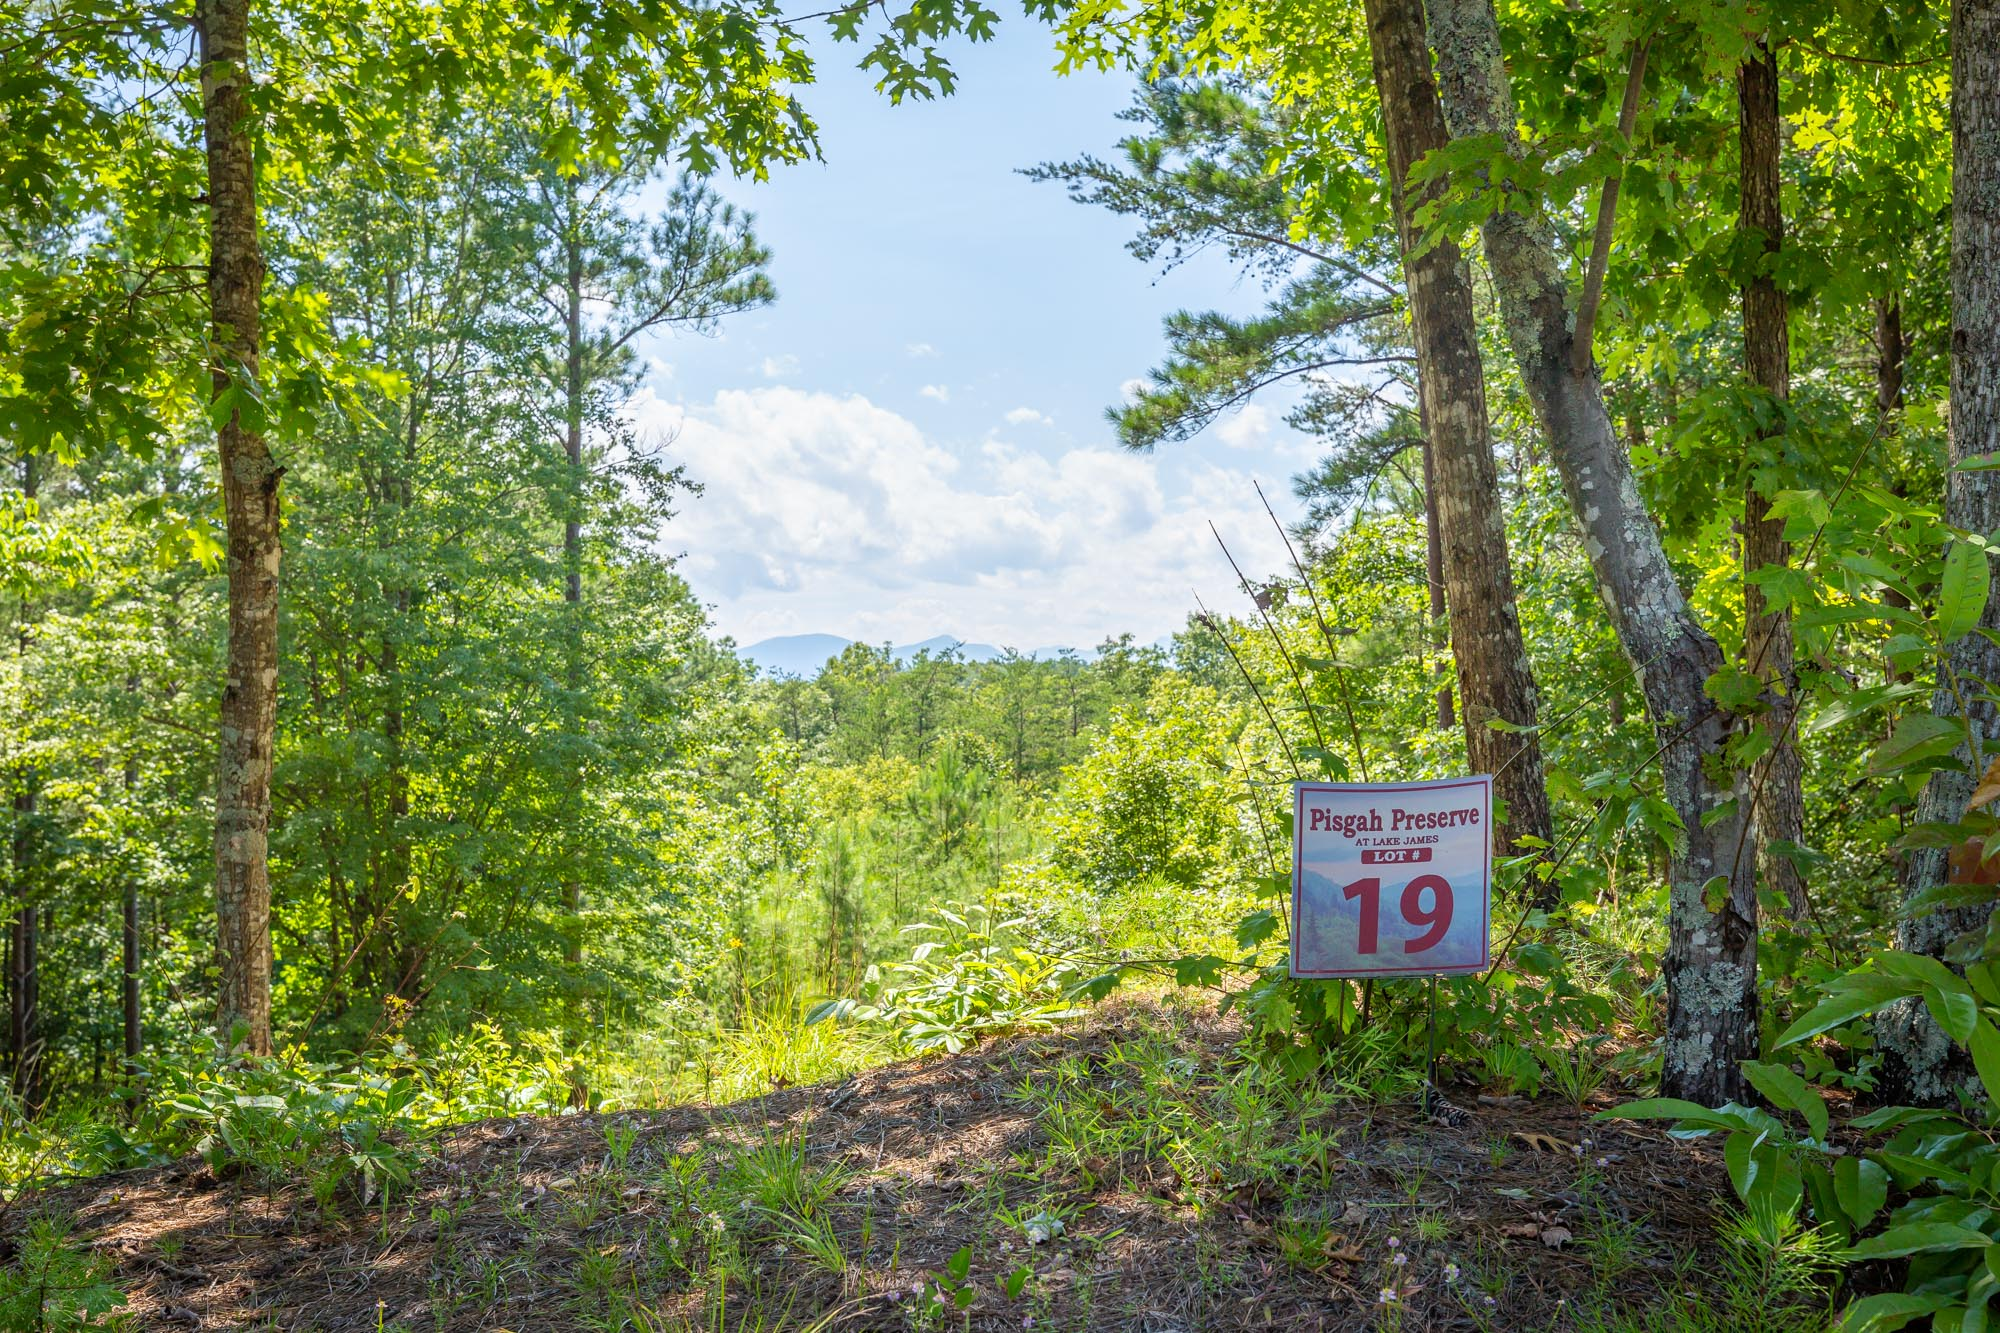 Pisgah Preserve Lot 19.jpg